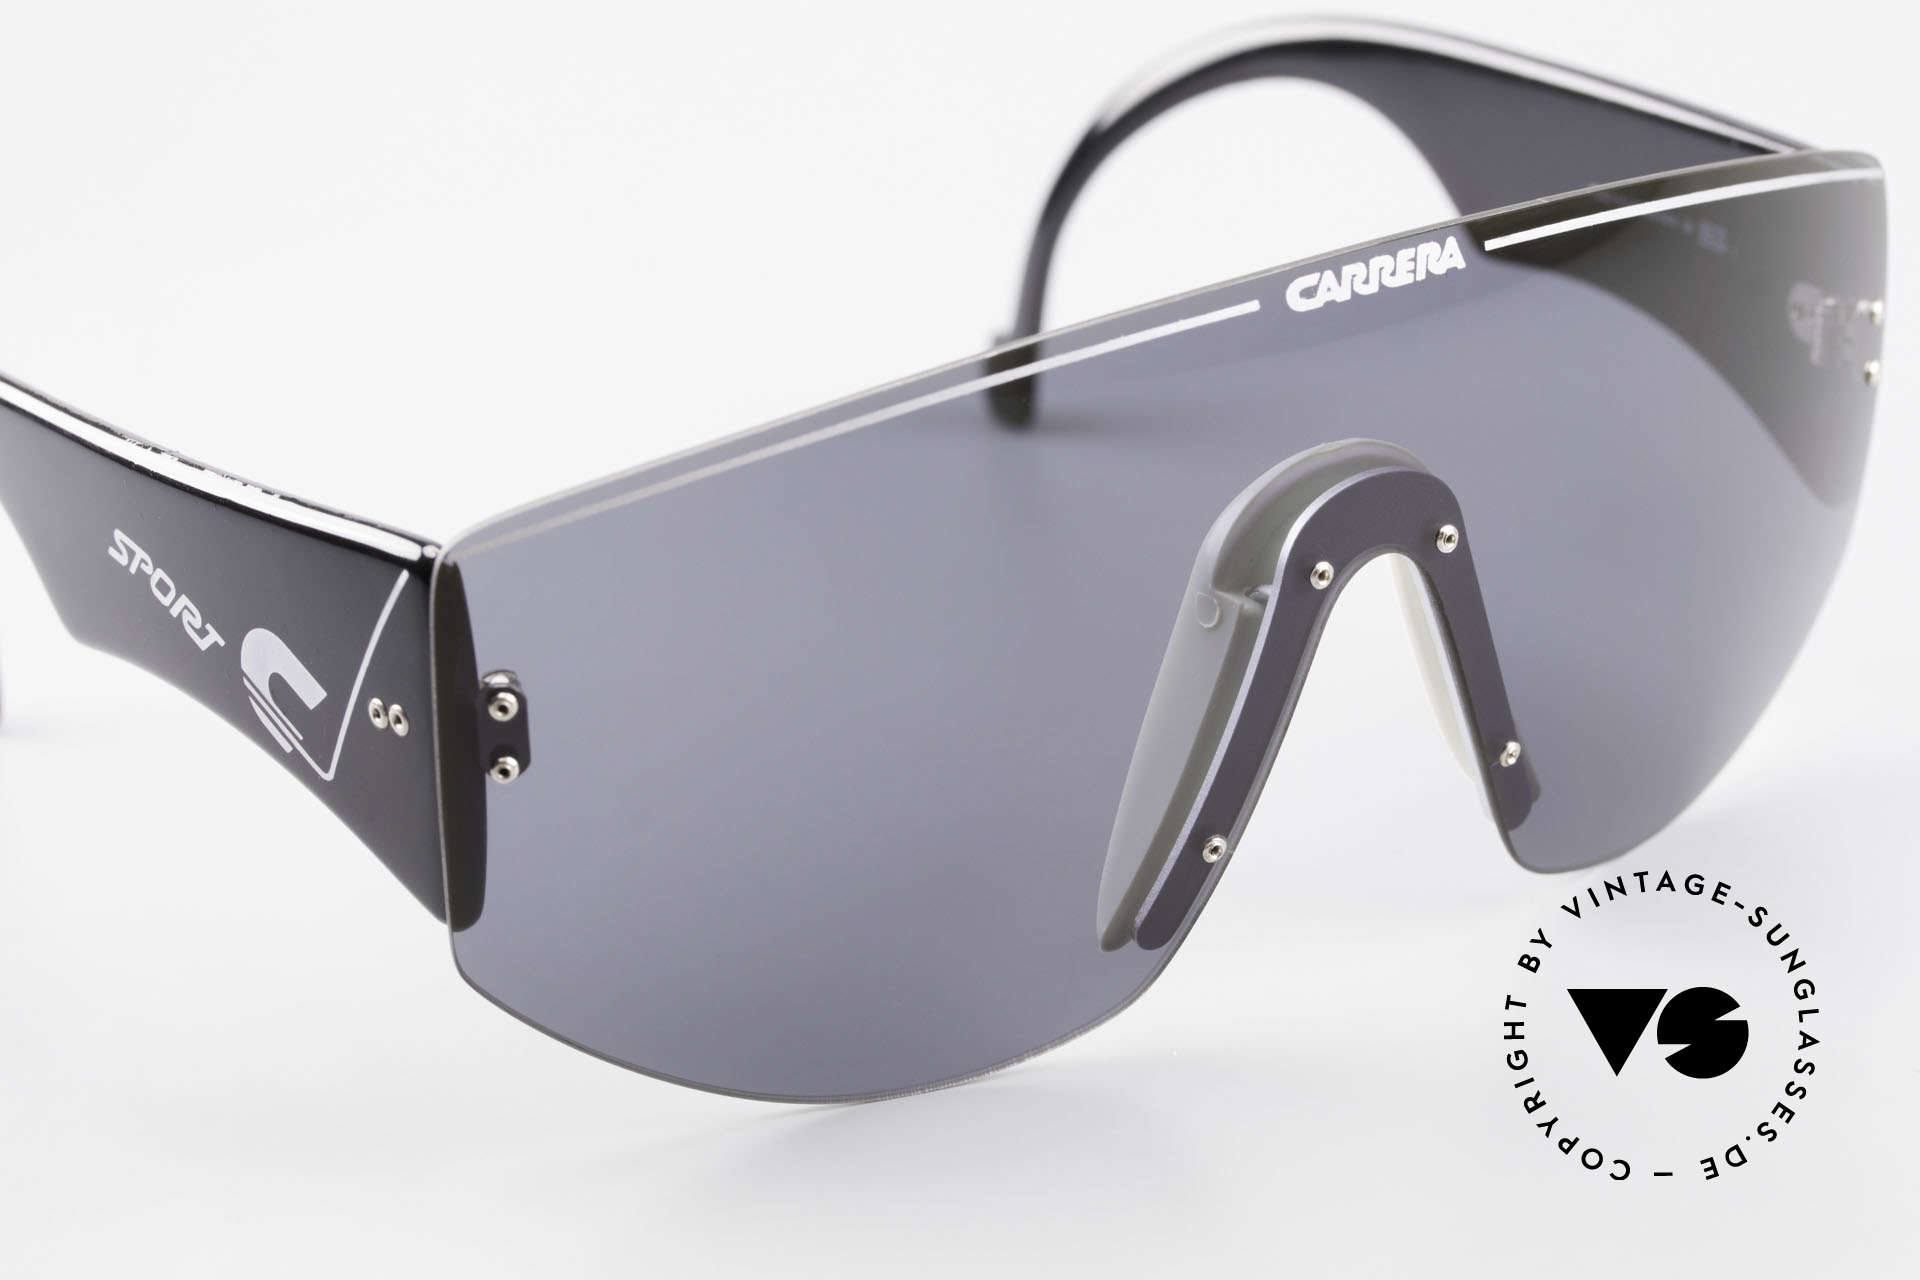 Carrera 5414 90's Sunglasses Sports Shades, 100% UV protection thanks to Carrera C80 quality lens, Made for Men